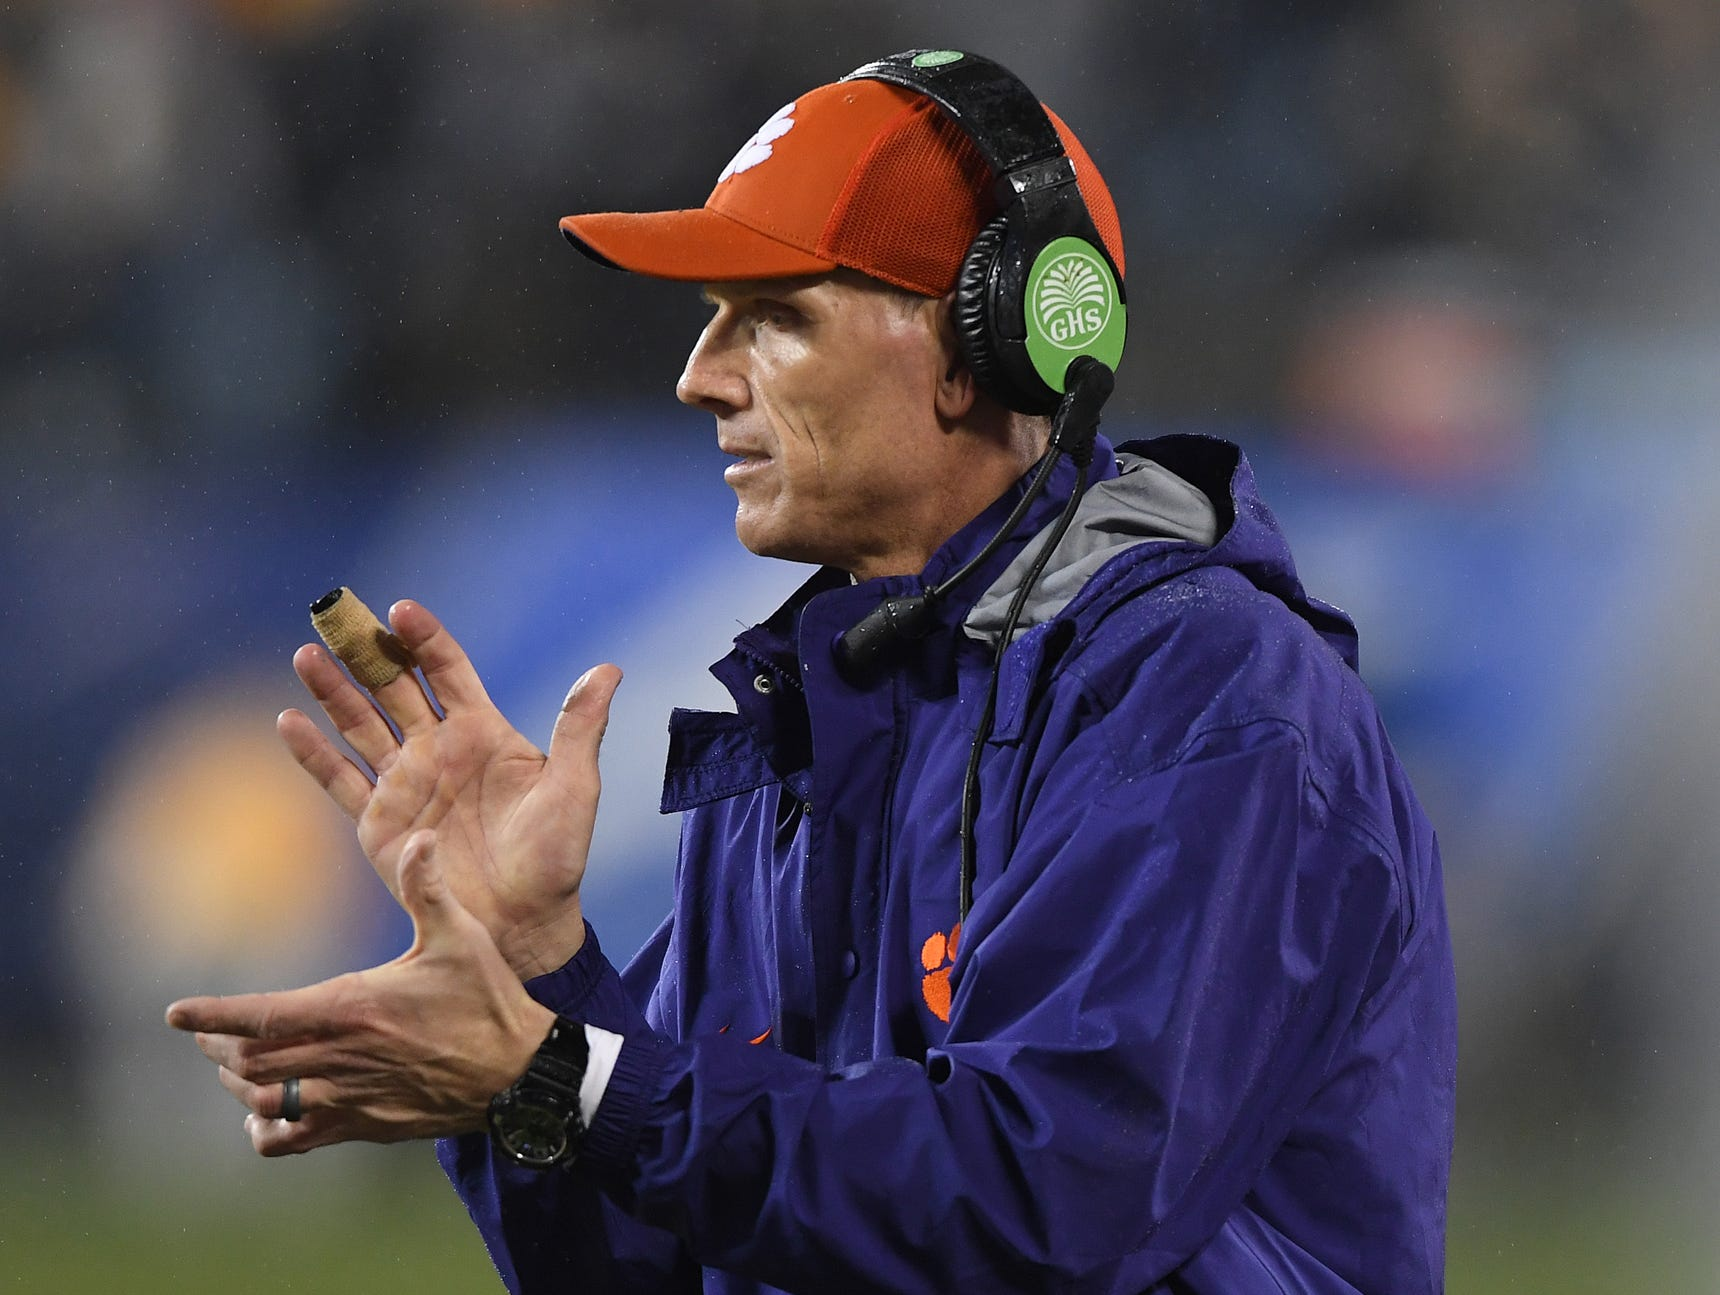 Clemson defensive coordinator Brent Venables coaches against Pittsburgh during the 1st quarter of the Dr. Pepper ACC Championship at Bank of America Stadium in Charlotte, N.C. Saturday, December 1, 2018.